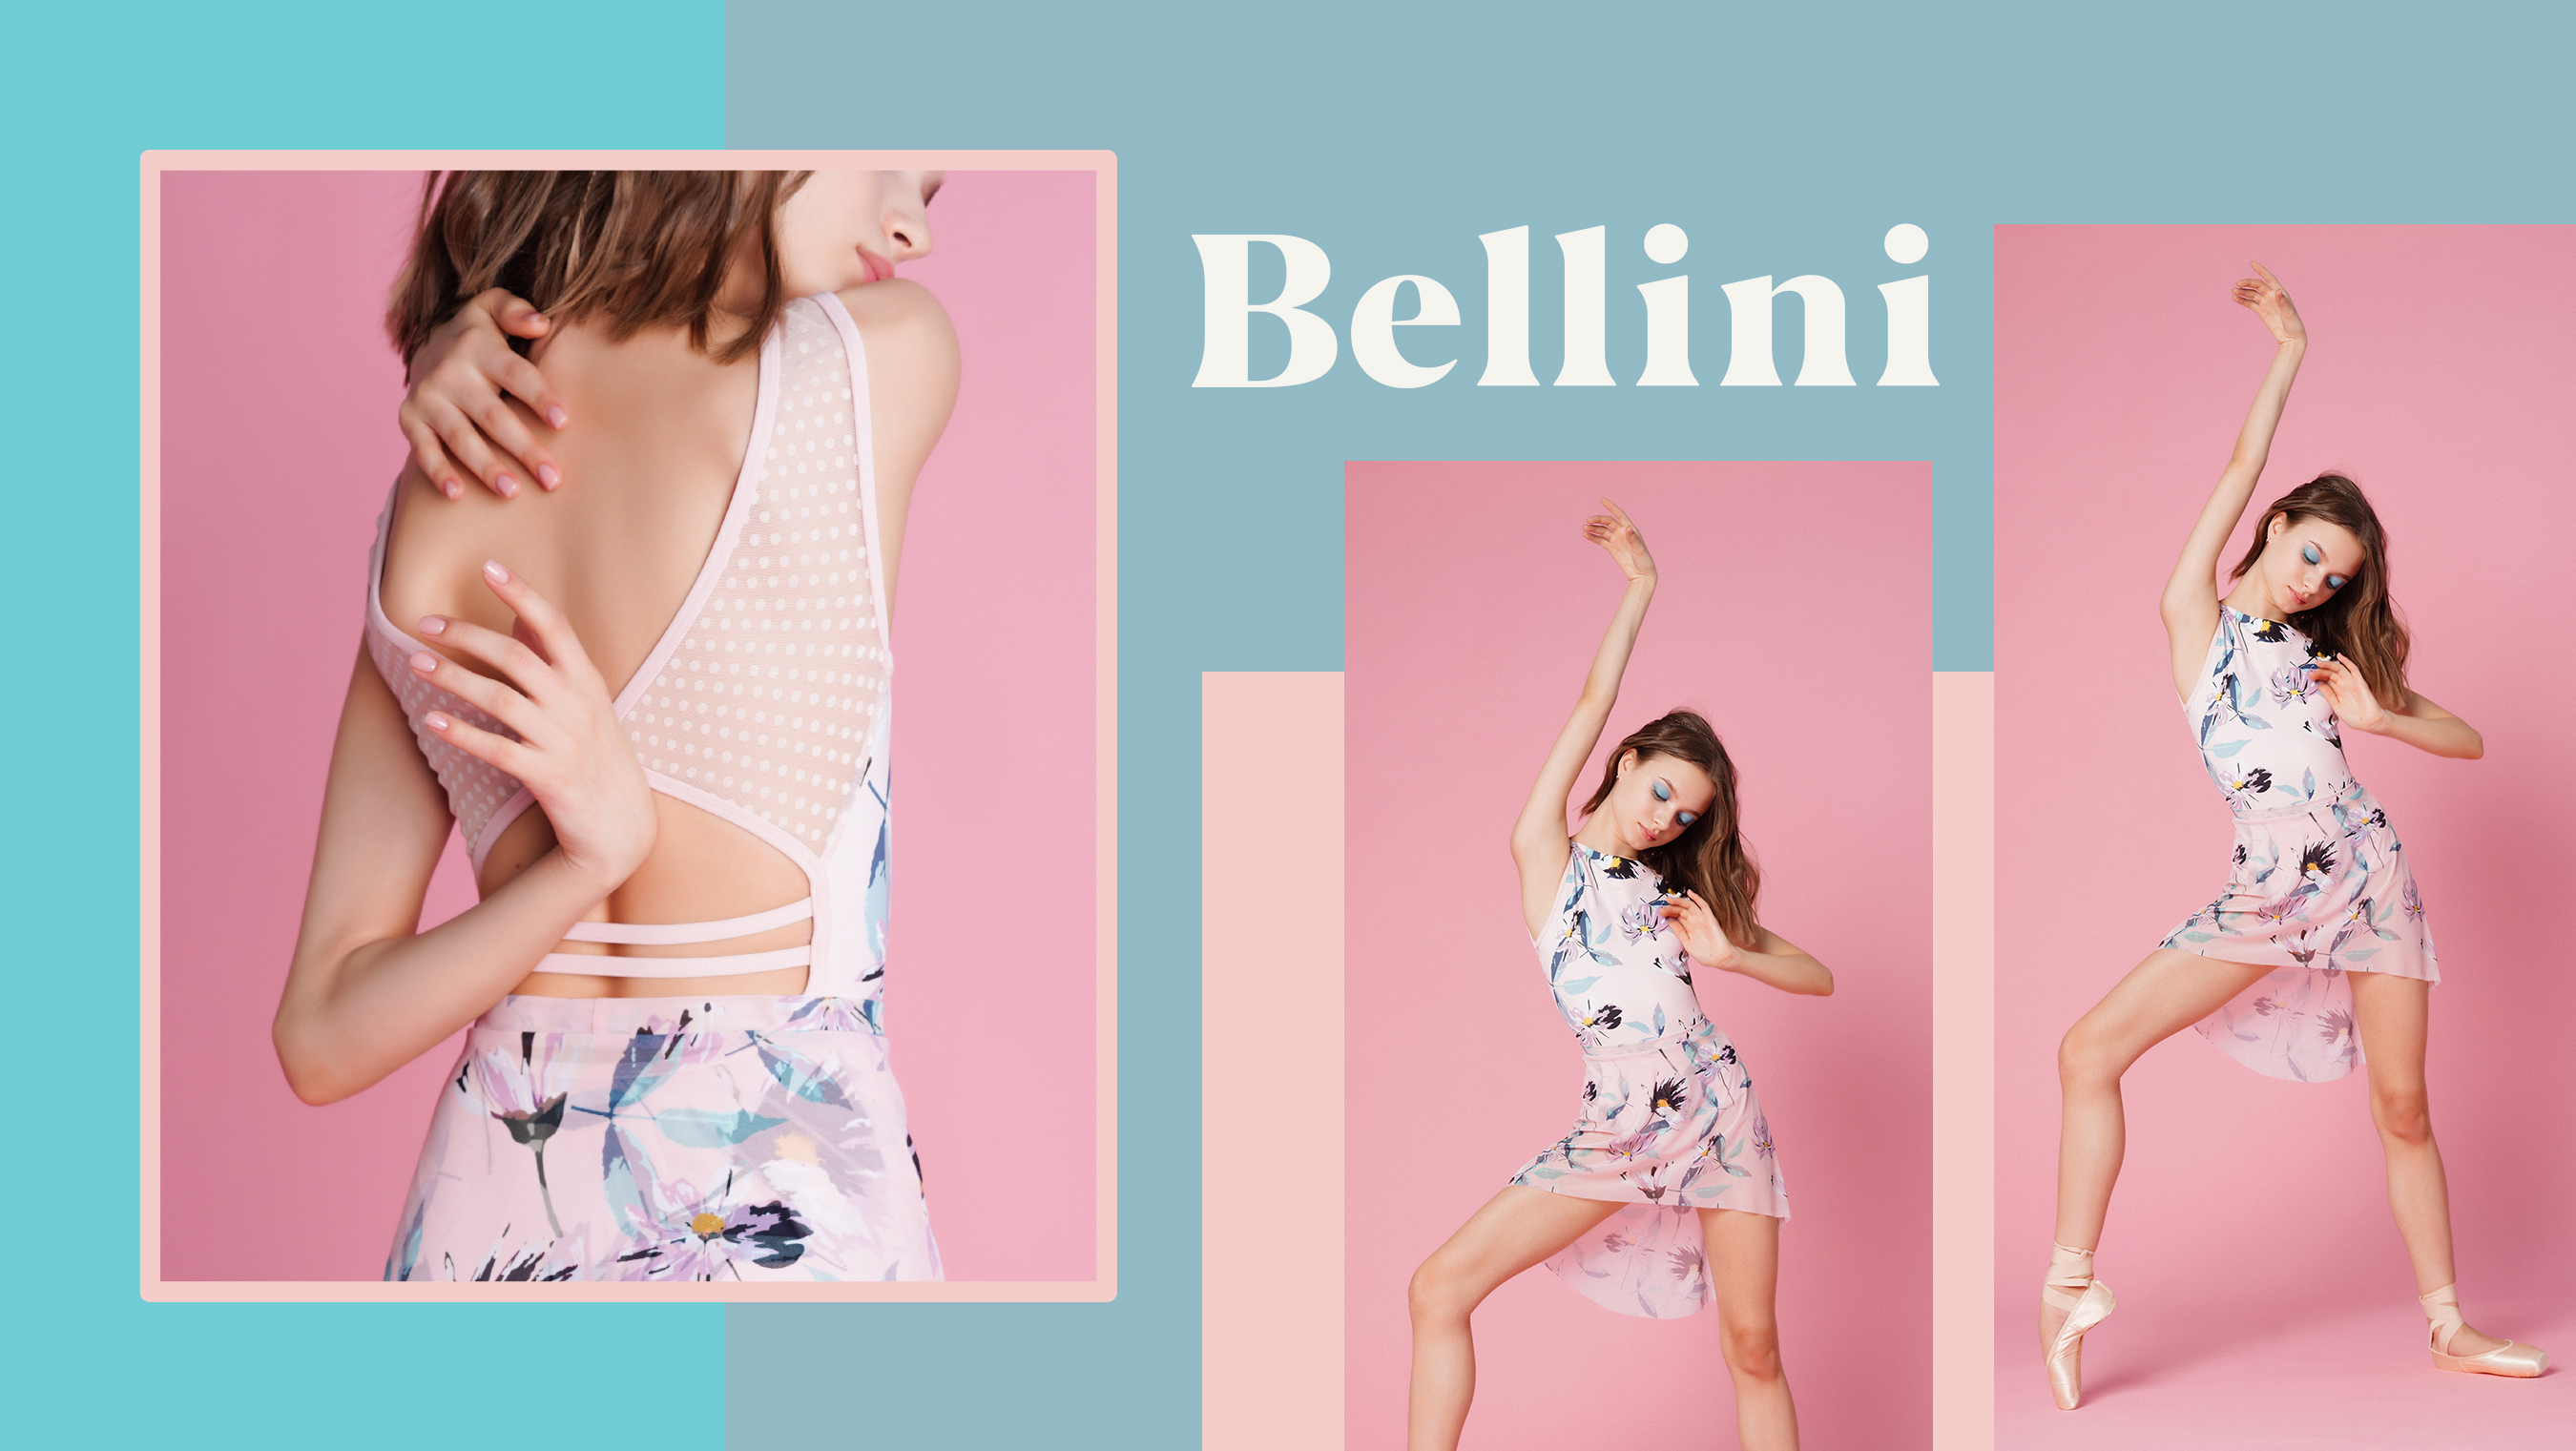 spring-fling-2021-banners-all-louise-bellini.jpg